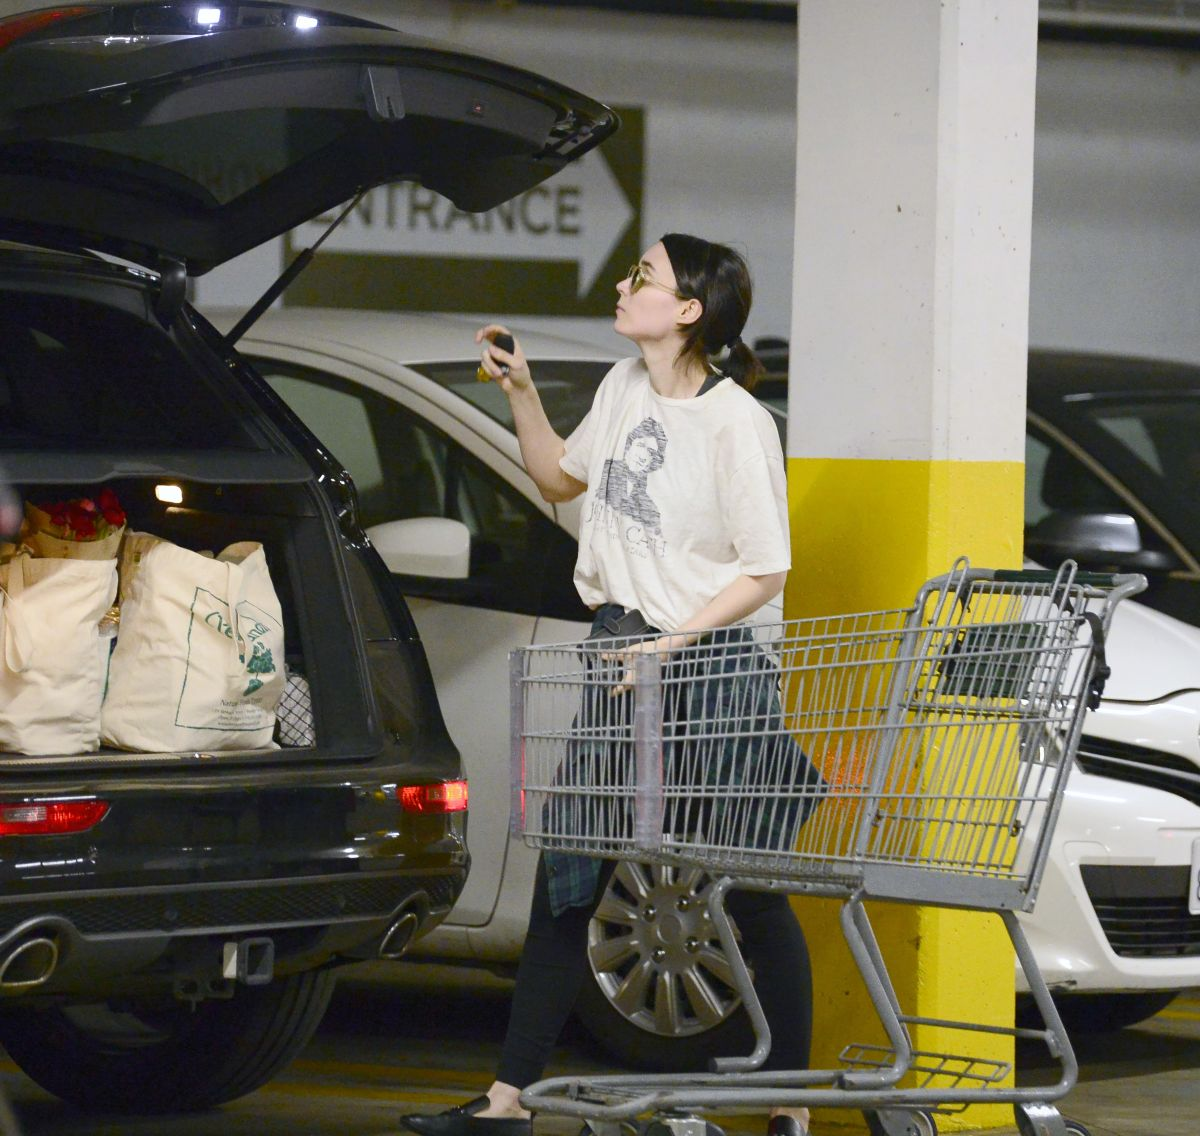 Los Angeles Supermarket: Rooney Mara Is Spotted Grocery Shopping At A Health Food